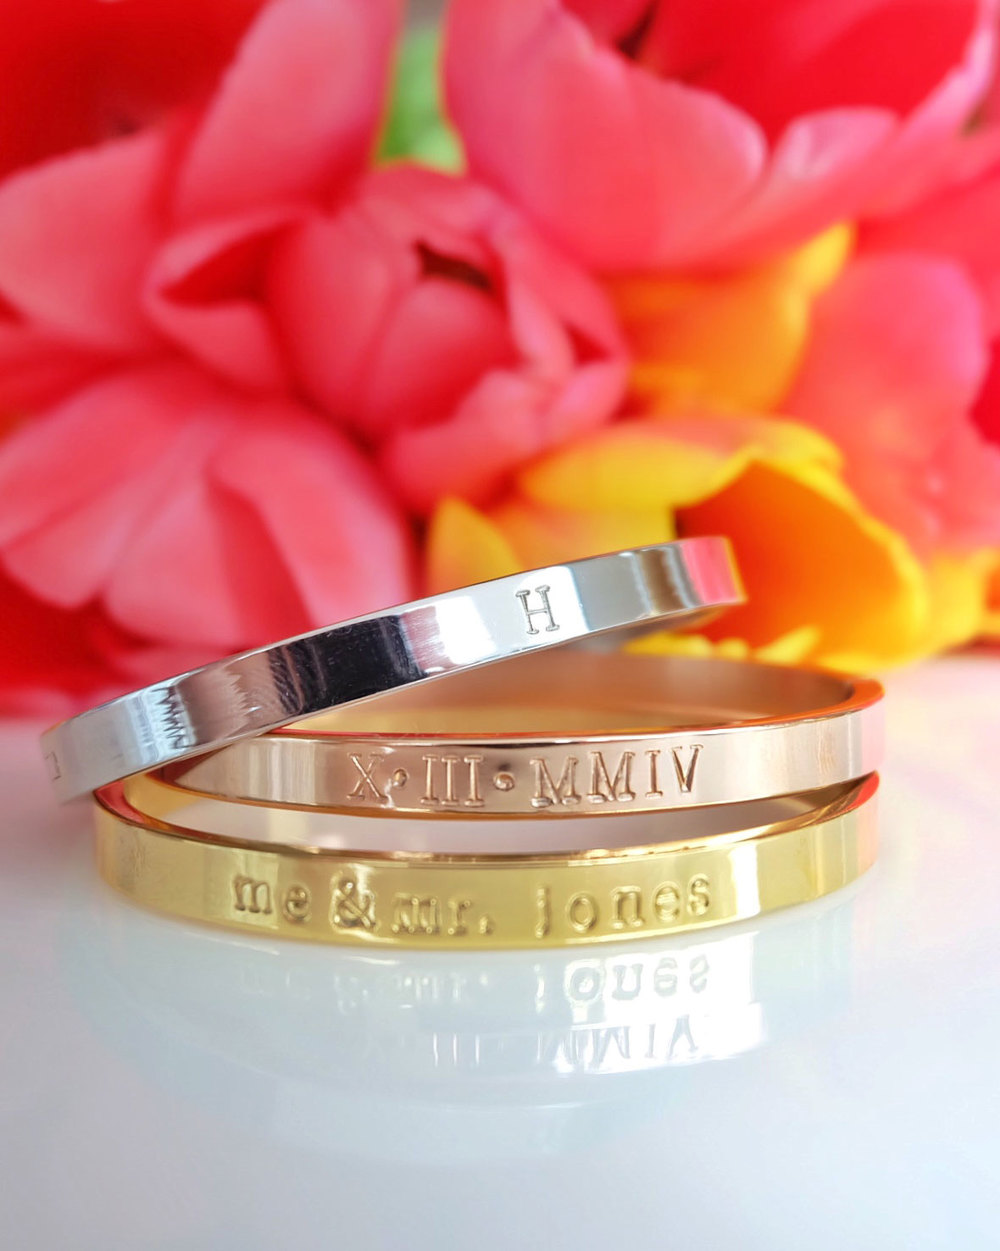 special wedding gifts for the bride groom parents bridal party wedding gifts for parents Personalized stack bracelets roman numeral wedding date cuff gold rose gold and